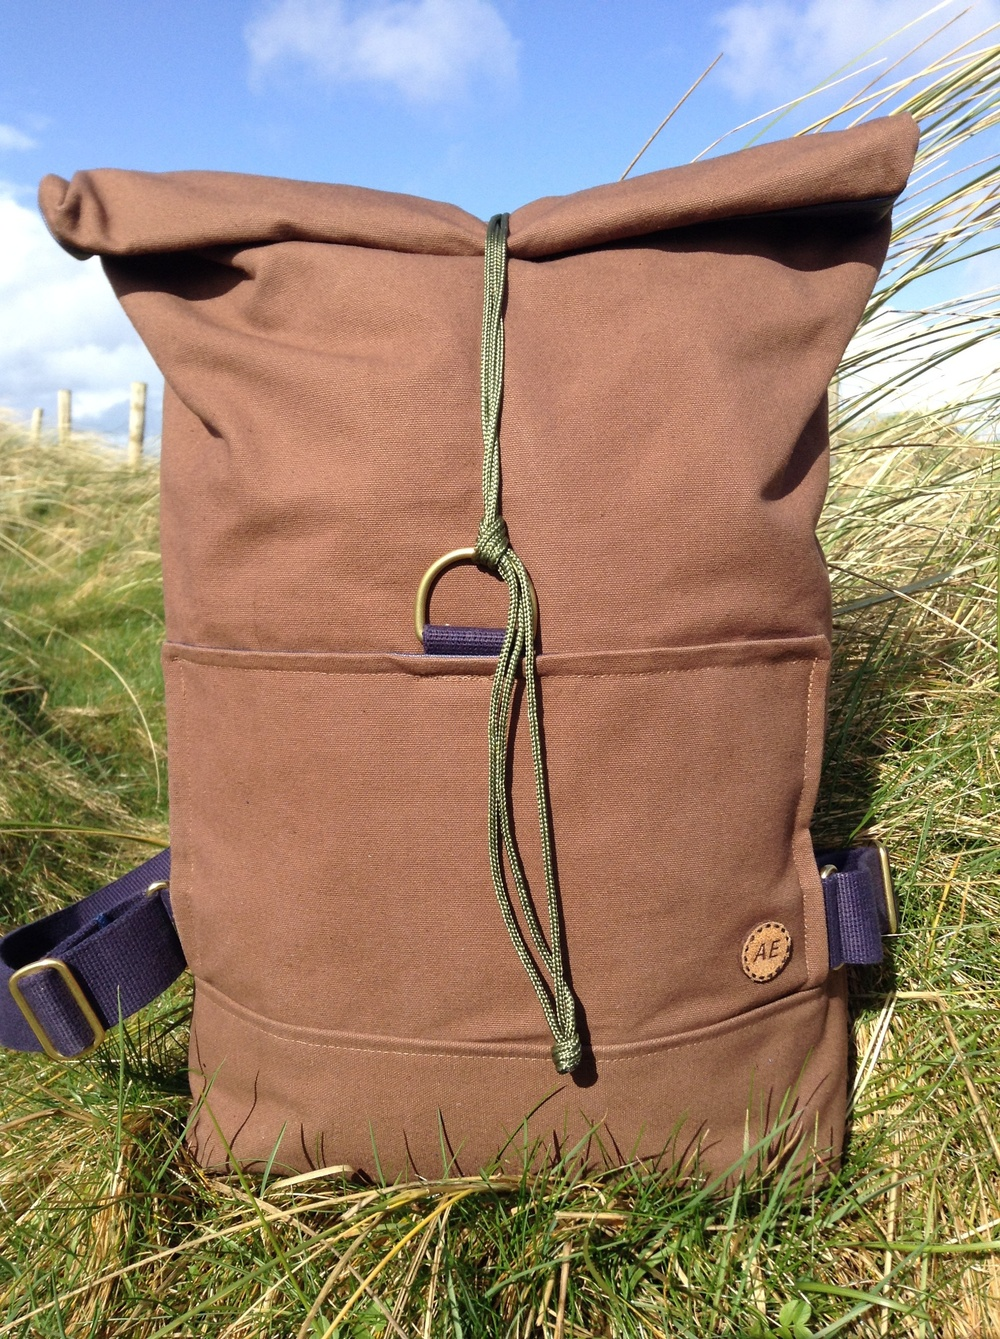 The rolltop feature allows for adjustable carry volume, so you can carry a little or a lot in a secure fashion